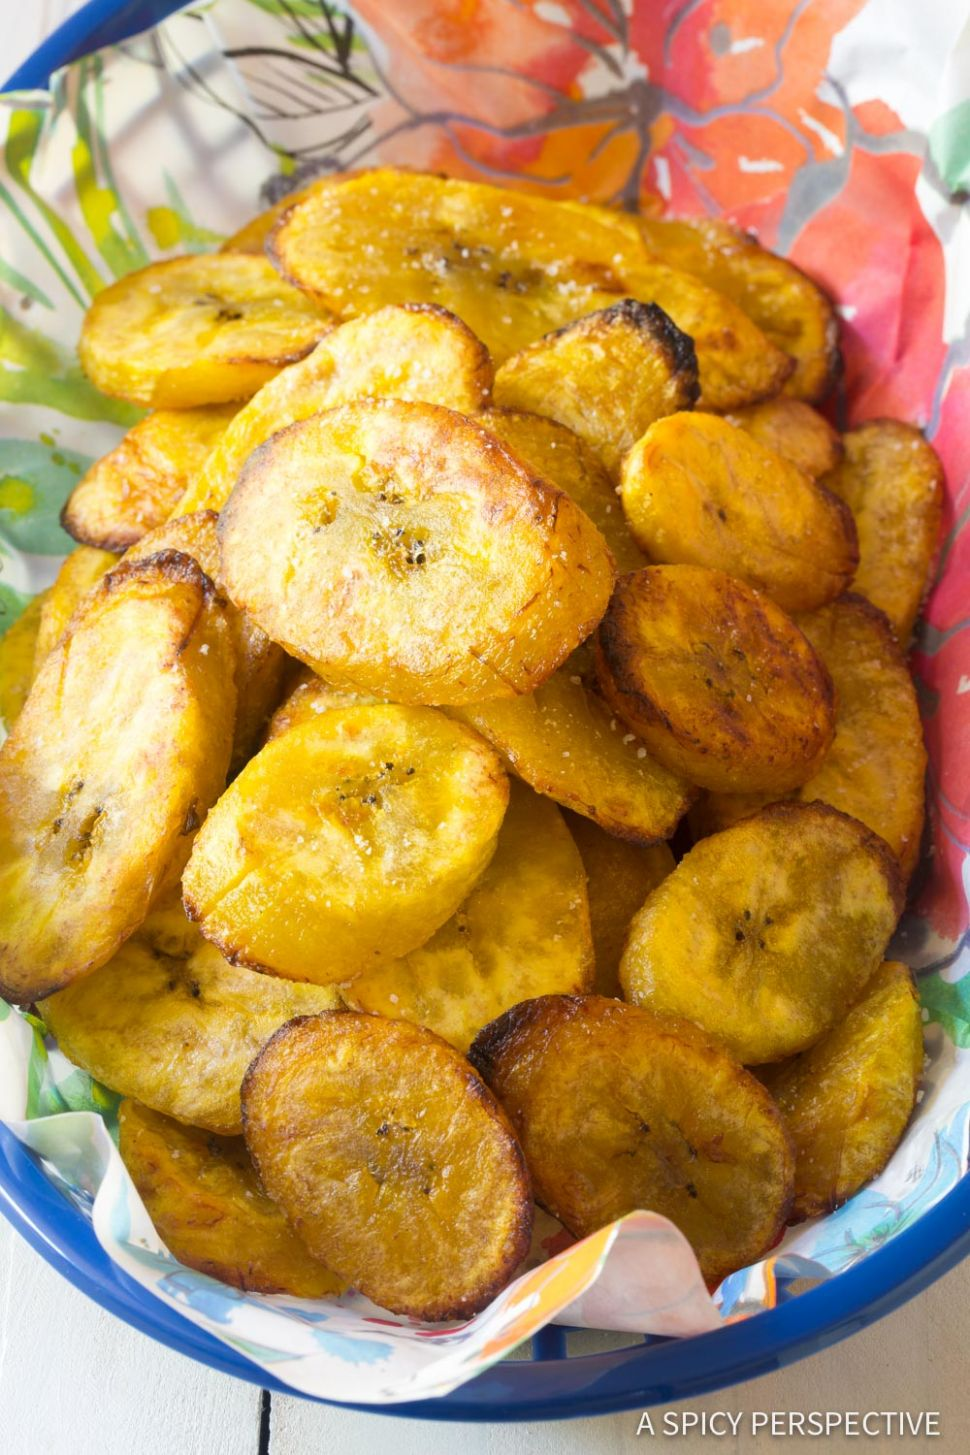 Perfect Baked Plantains Recipe (VIDEO) - A Spicy Perspective